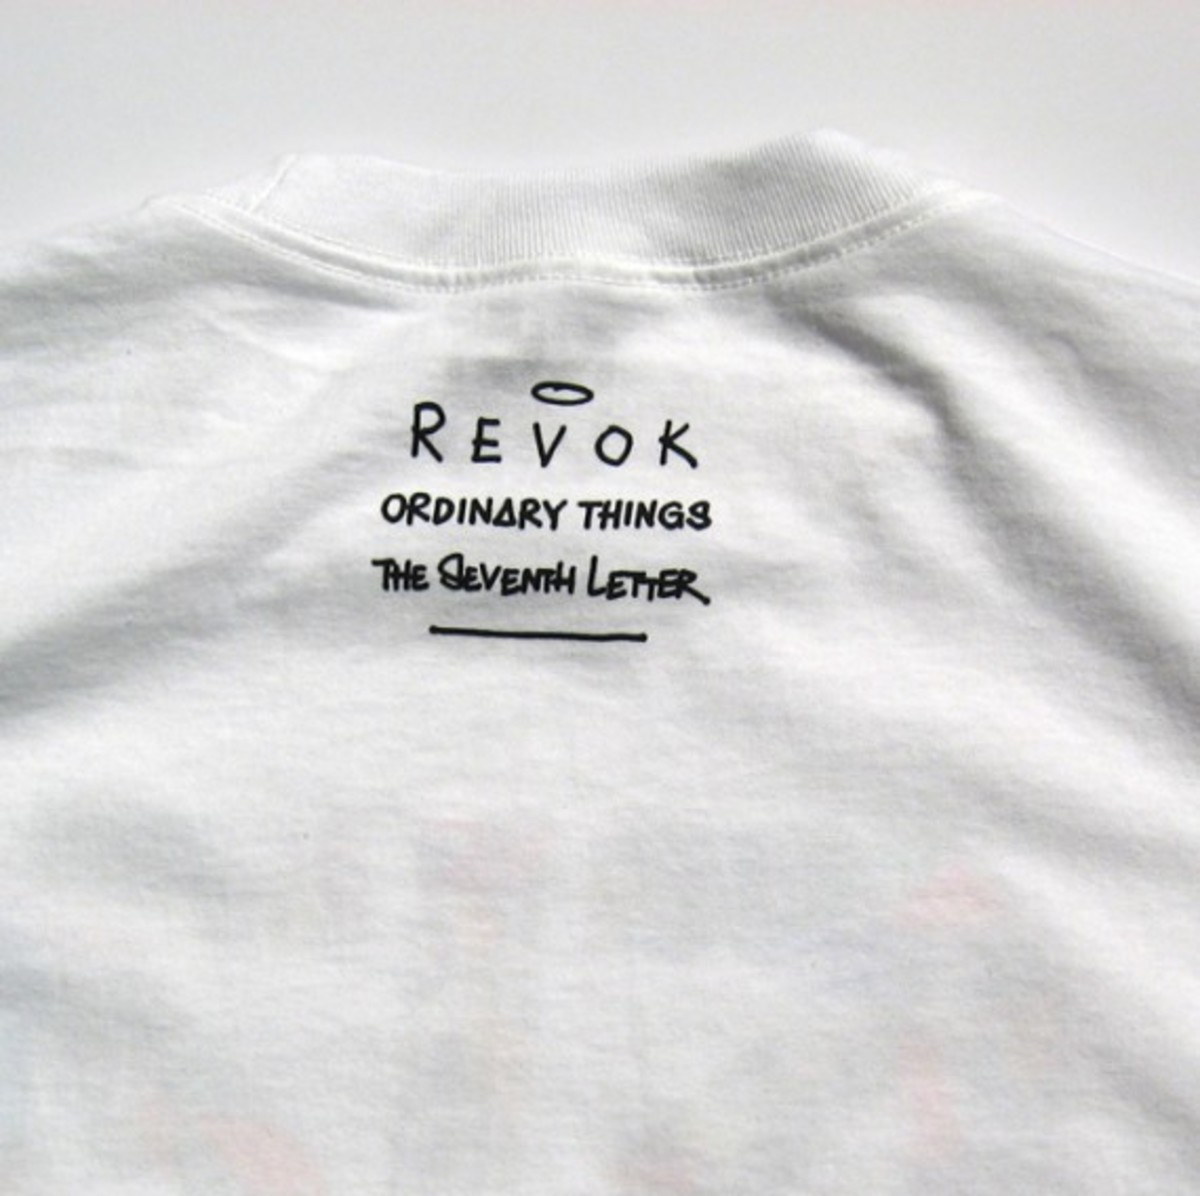 the-seventh-letter-revok-ordinary-things-t-shirt-04